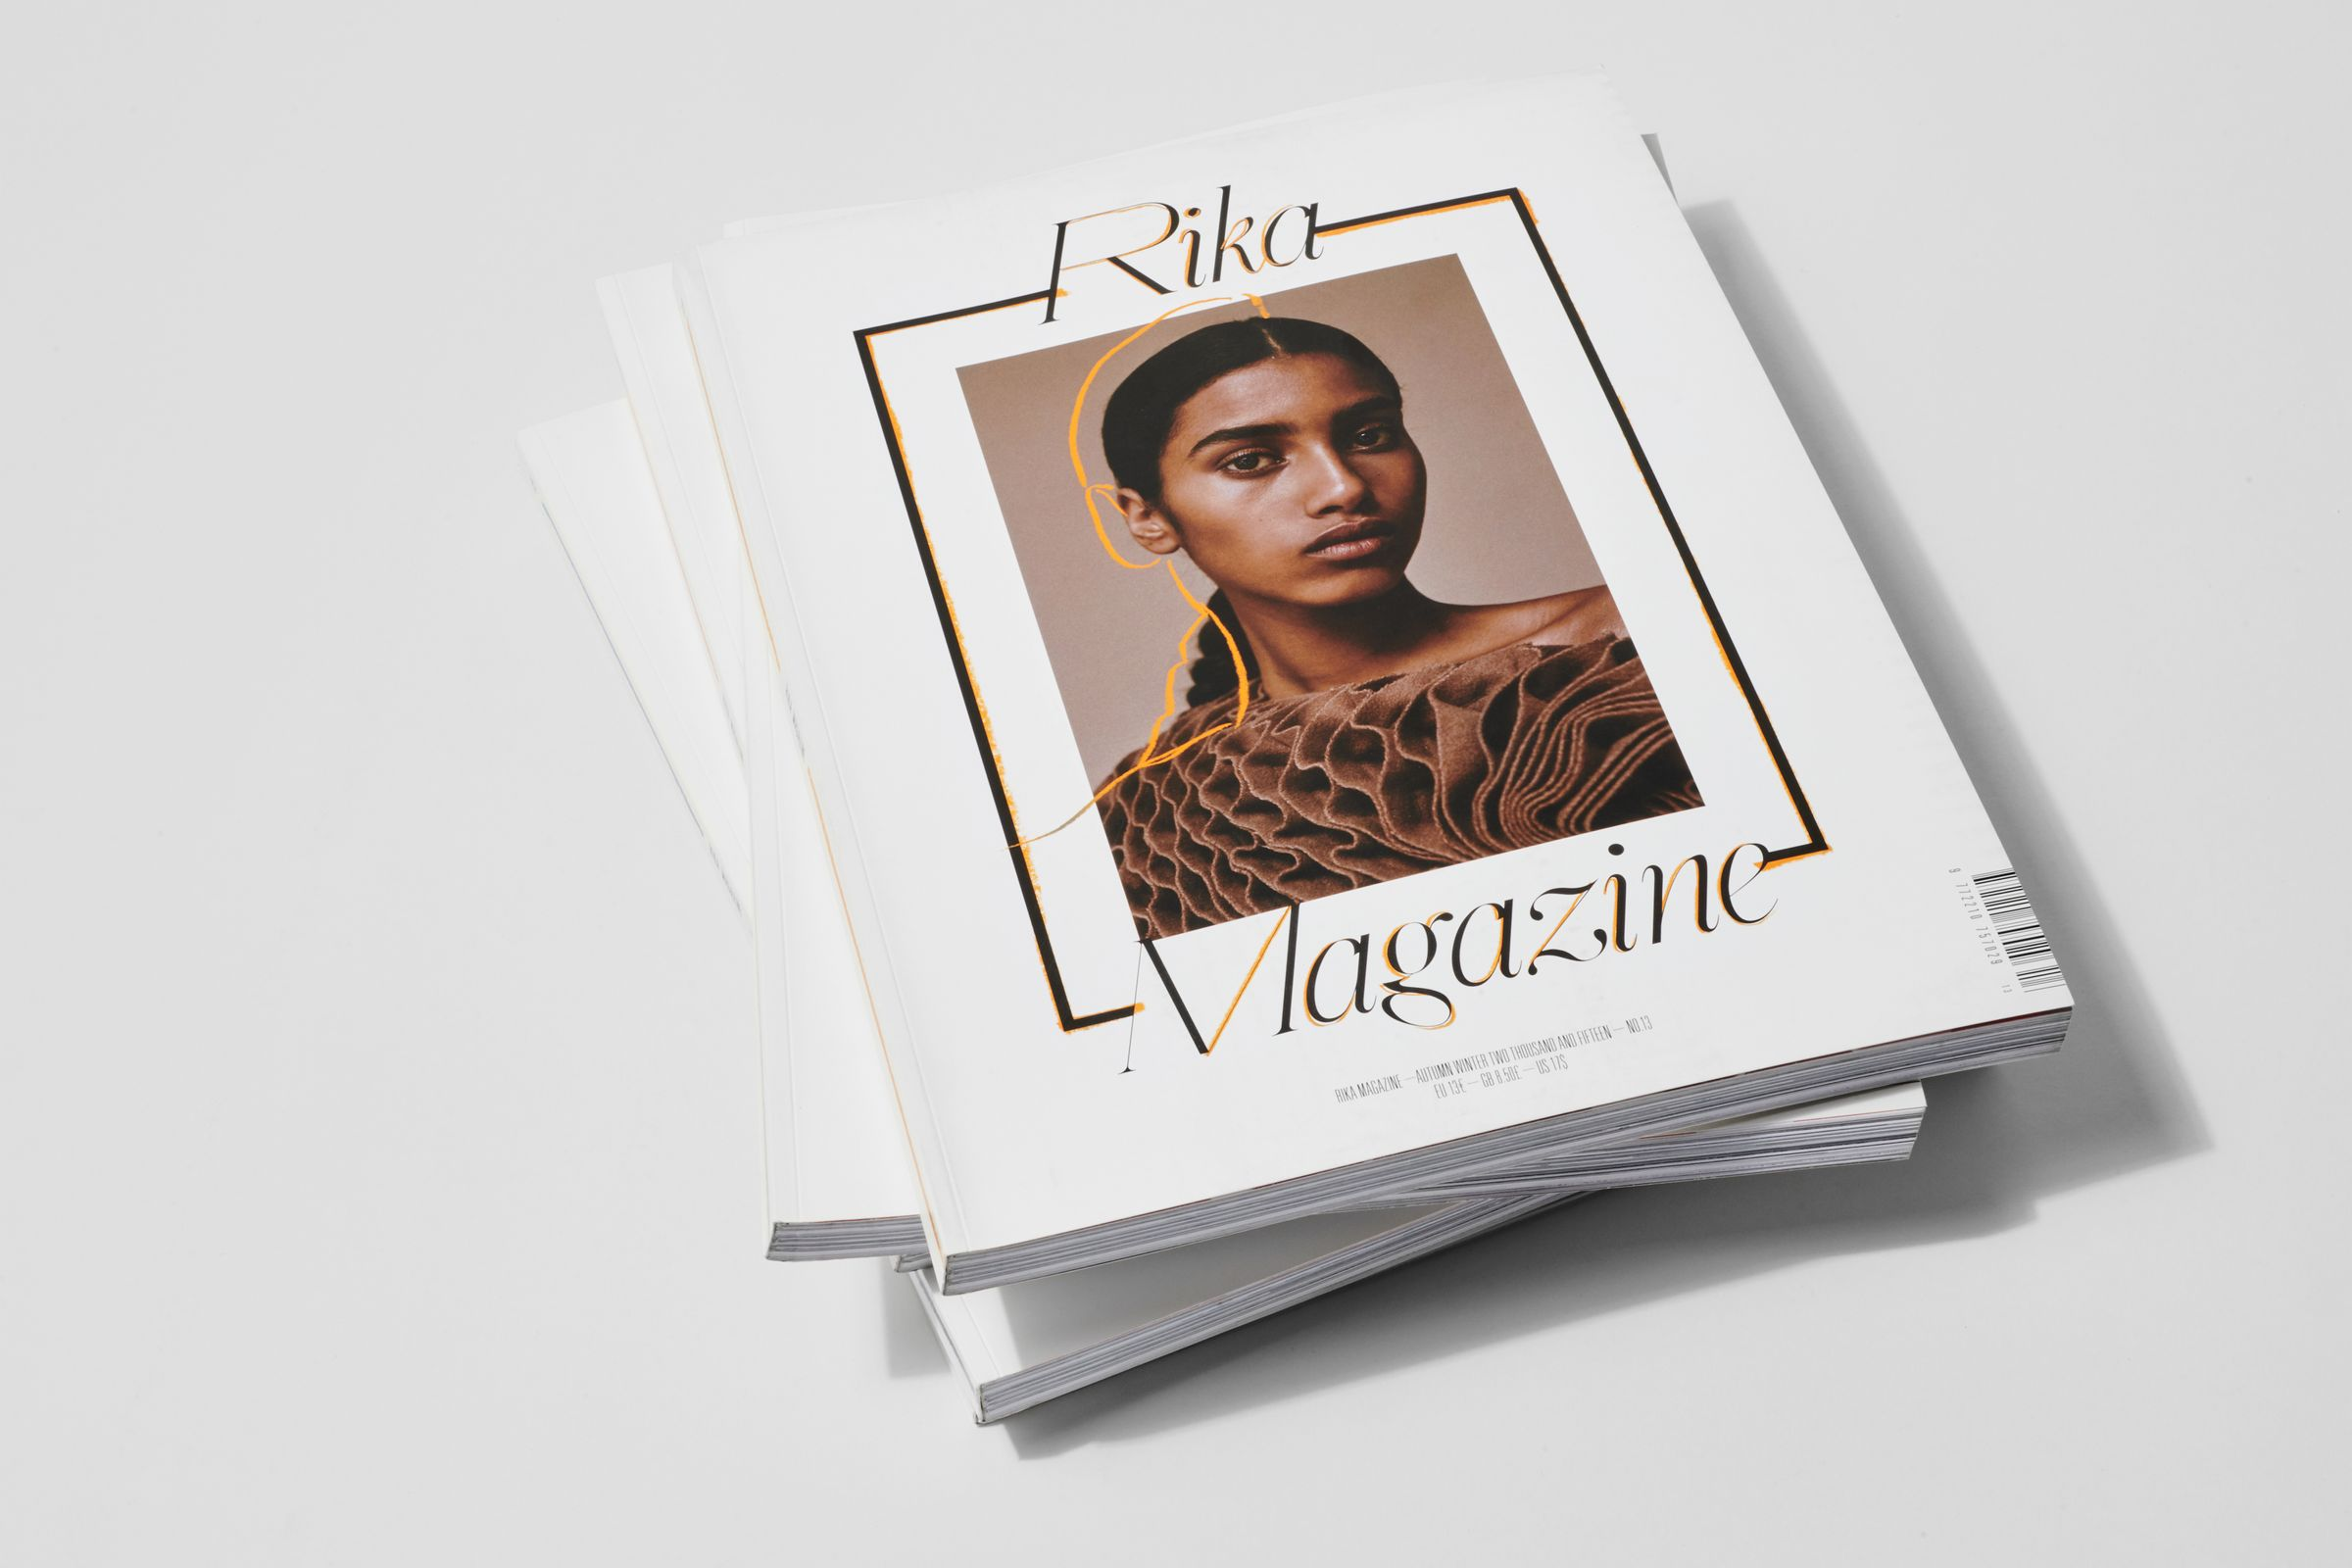 Rika Magazine issue no. 13 cover featuring Imaan Hammam photographed by Charlotte Wales